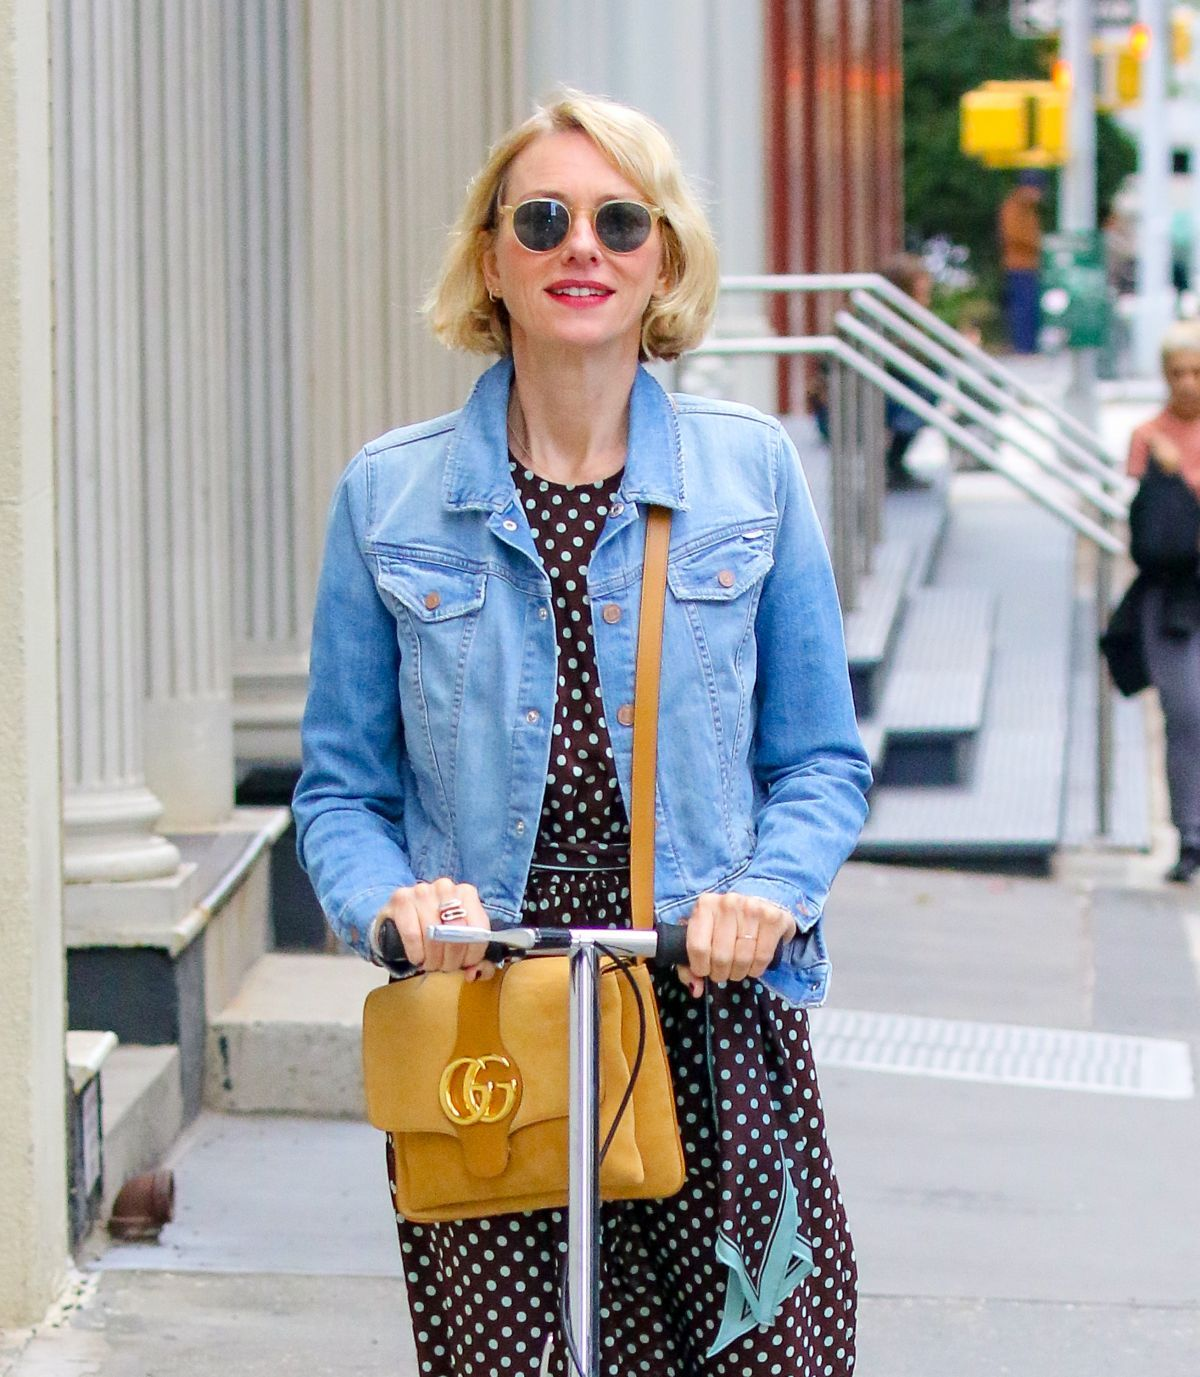 #naomiwatts NAOMI WATTS Out in New York 10/04/2019